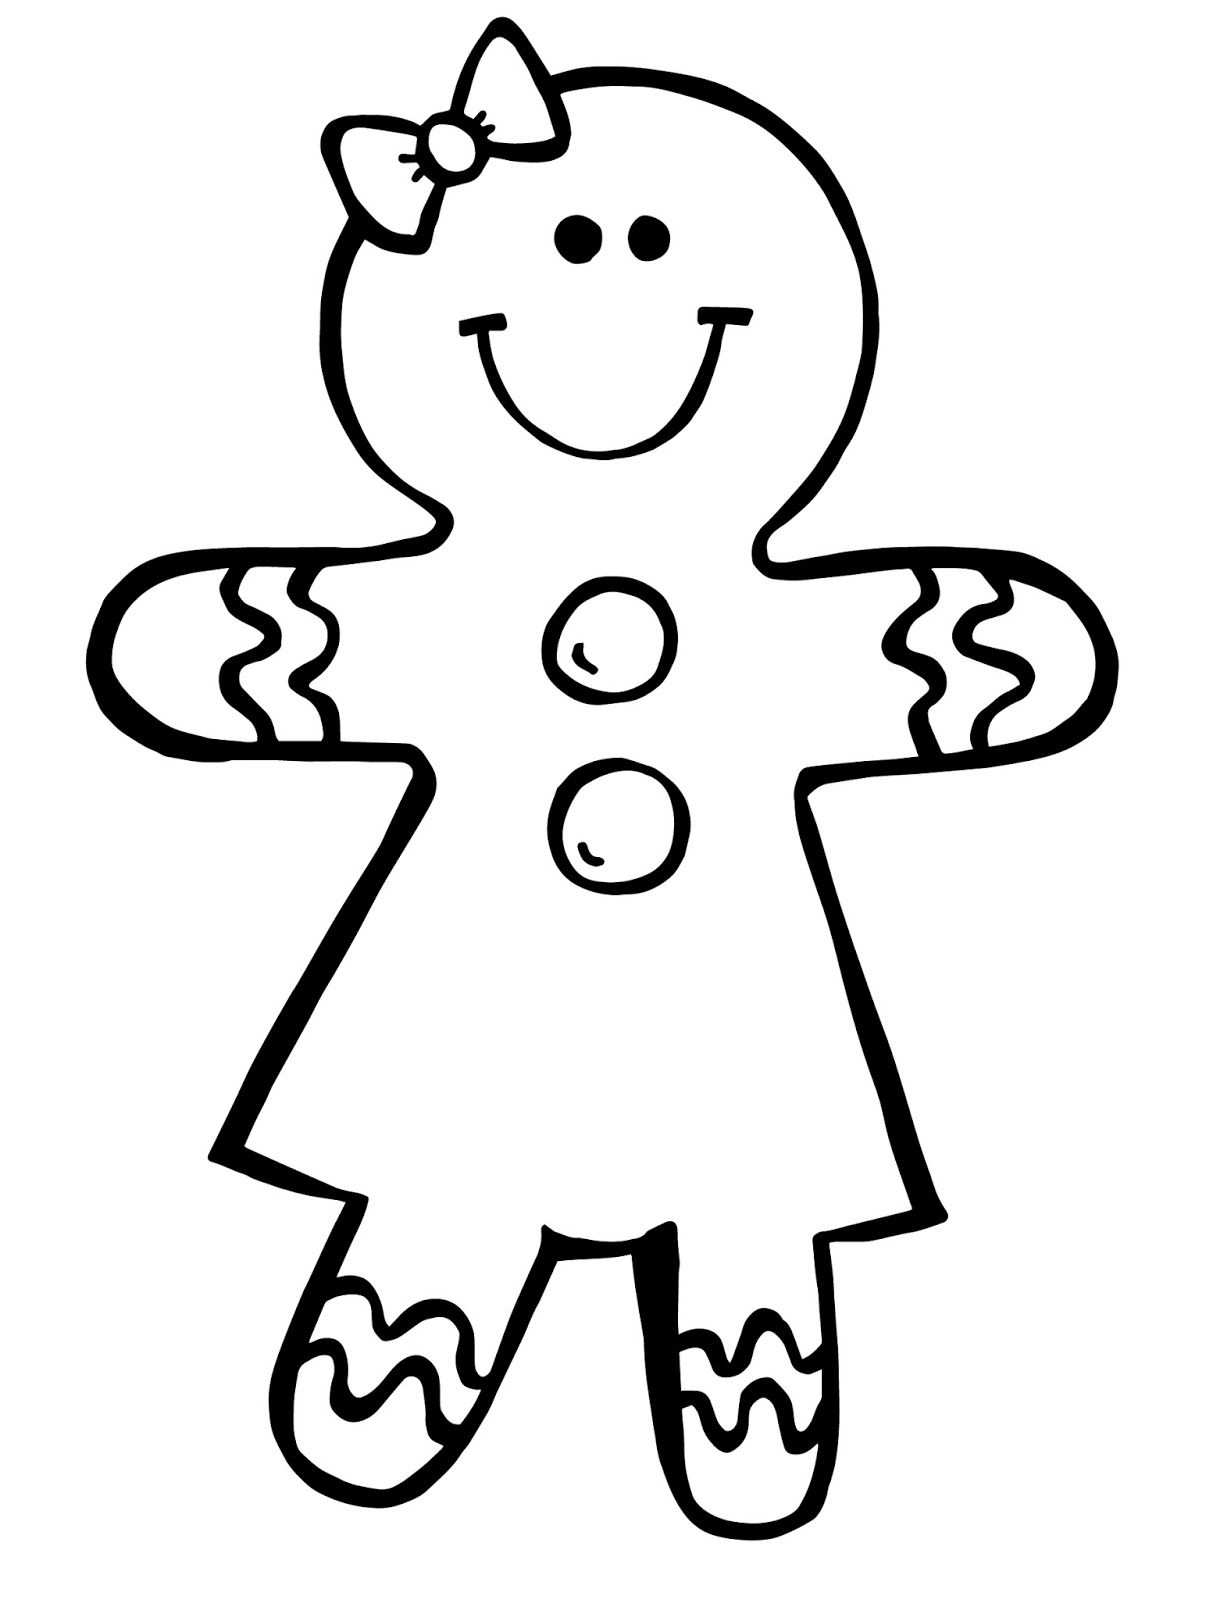 the art of teaching in today s world gingerbread boy girl clipart rh pinterest com